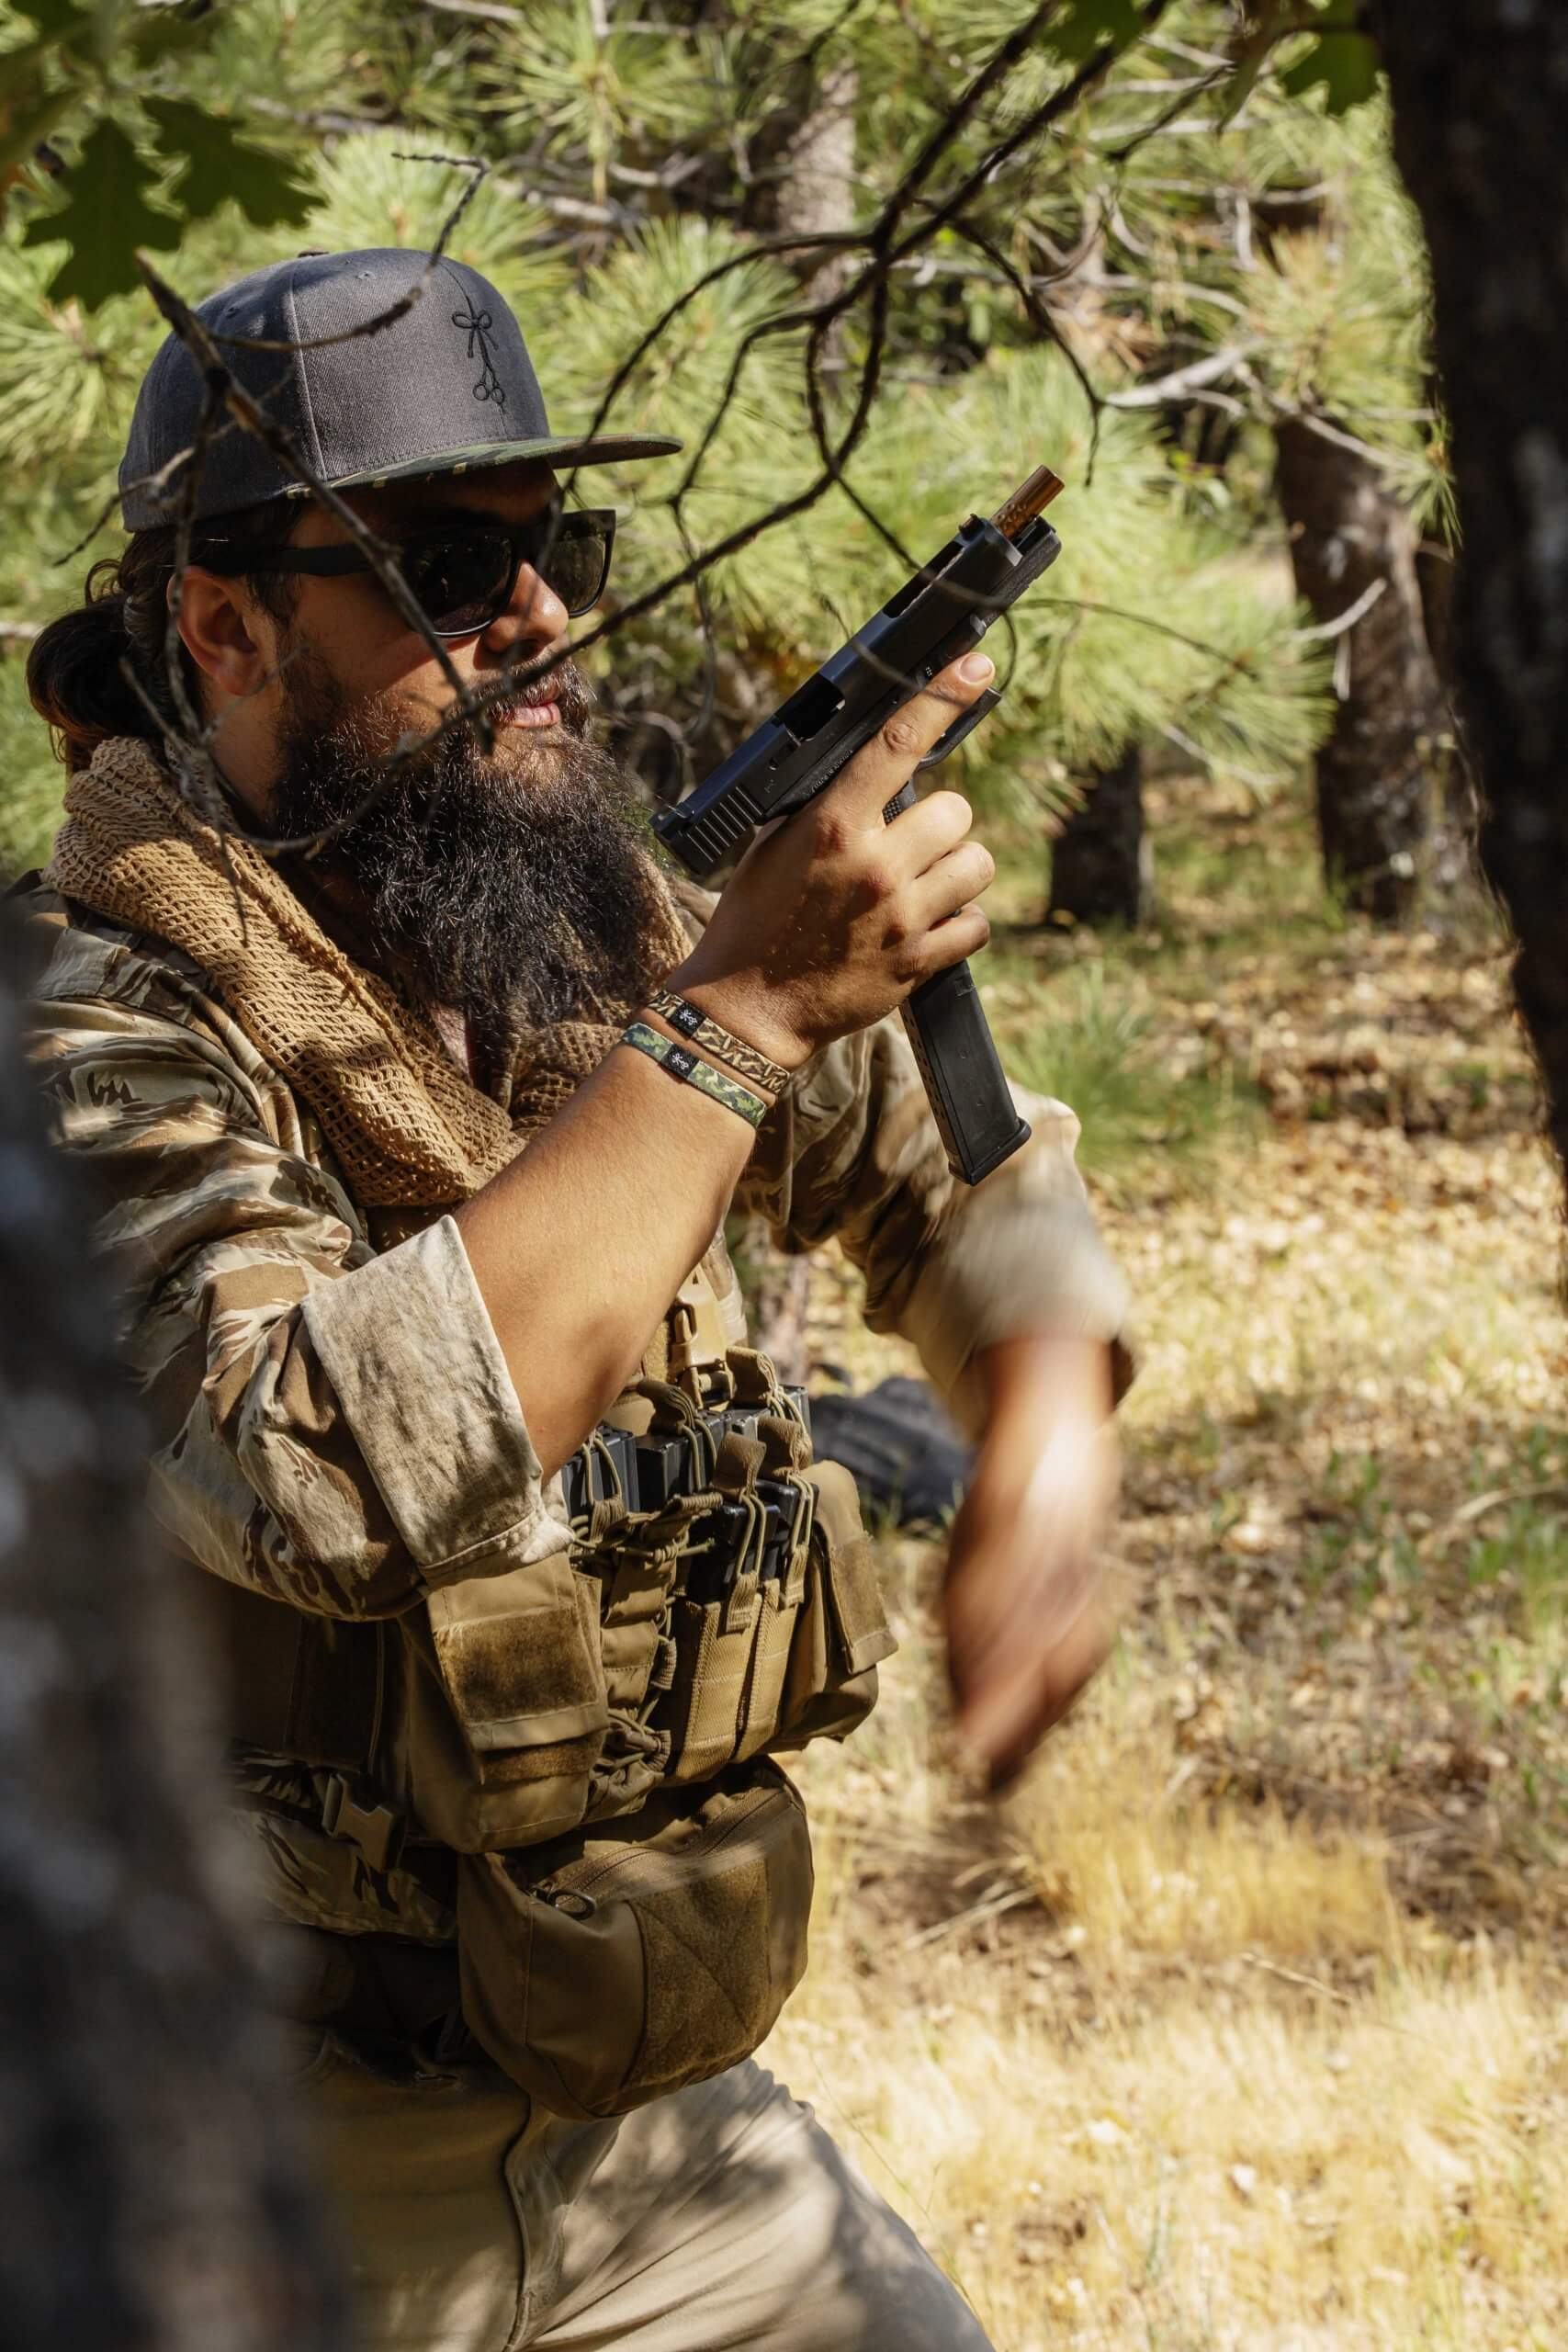 El Sicario in the woods reloading his 9mm during the camping trip photo shoot